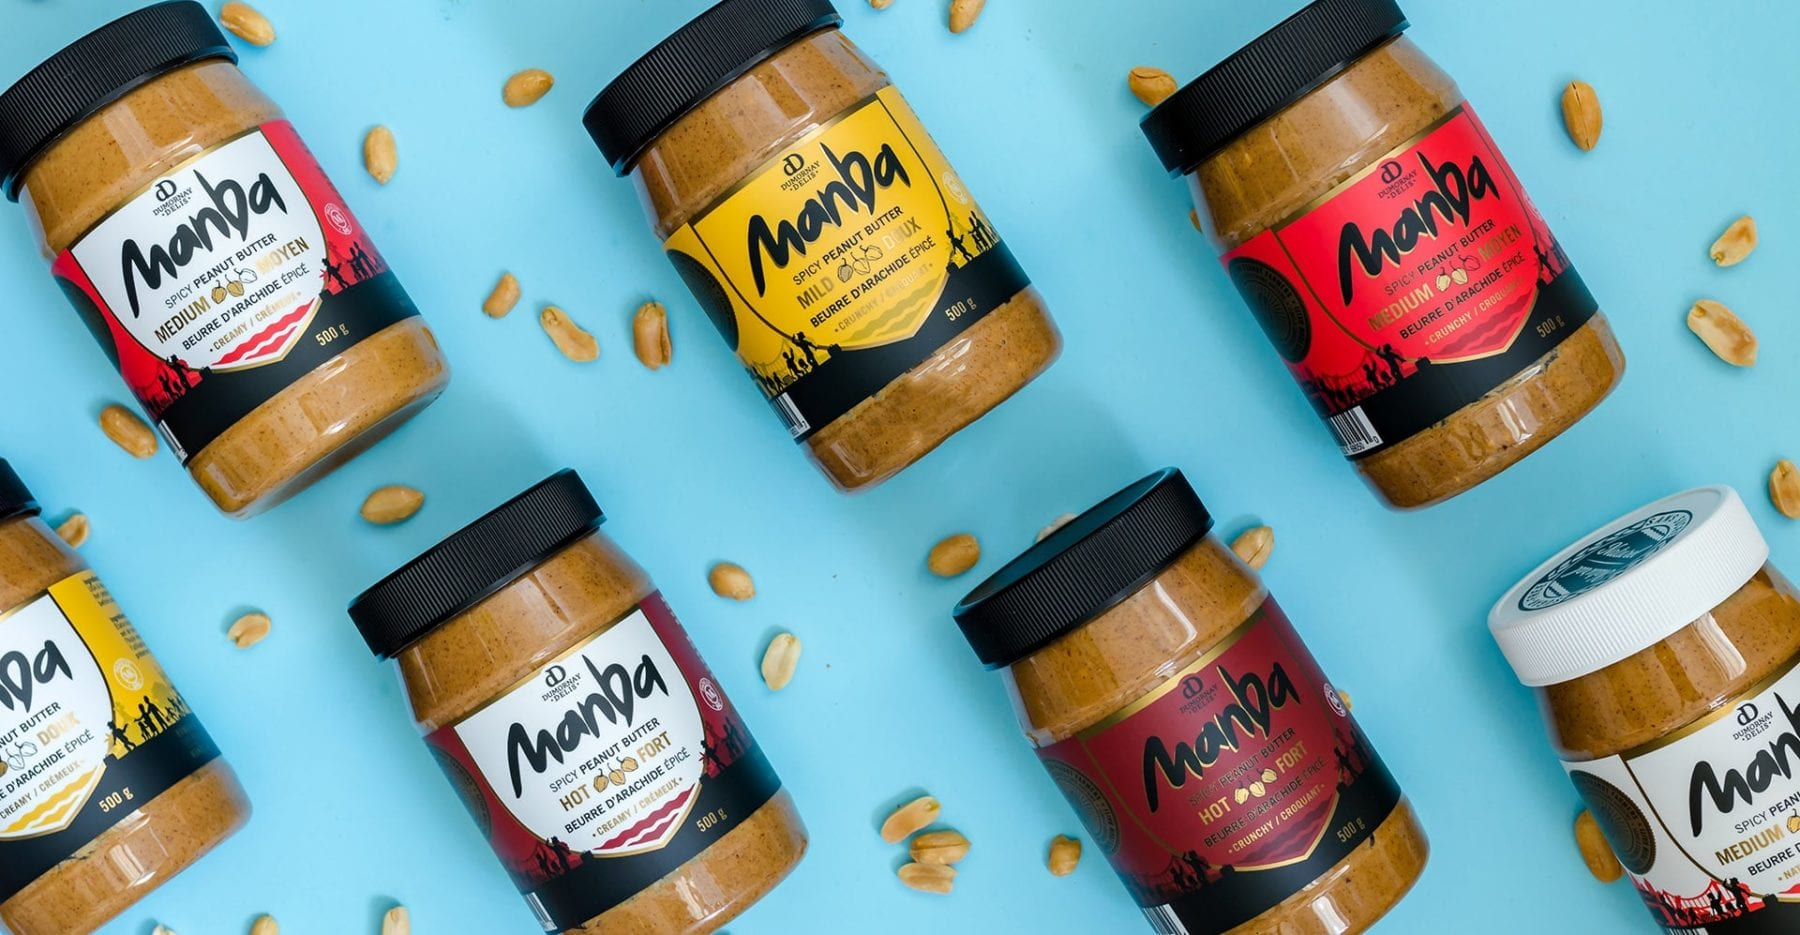 Various Jars of Manba spicy peanut butter on blue background